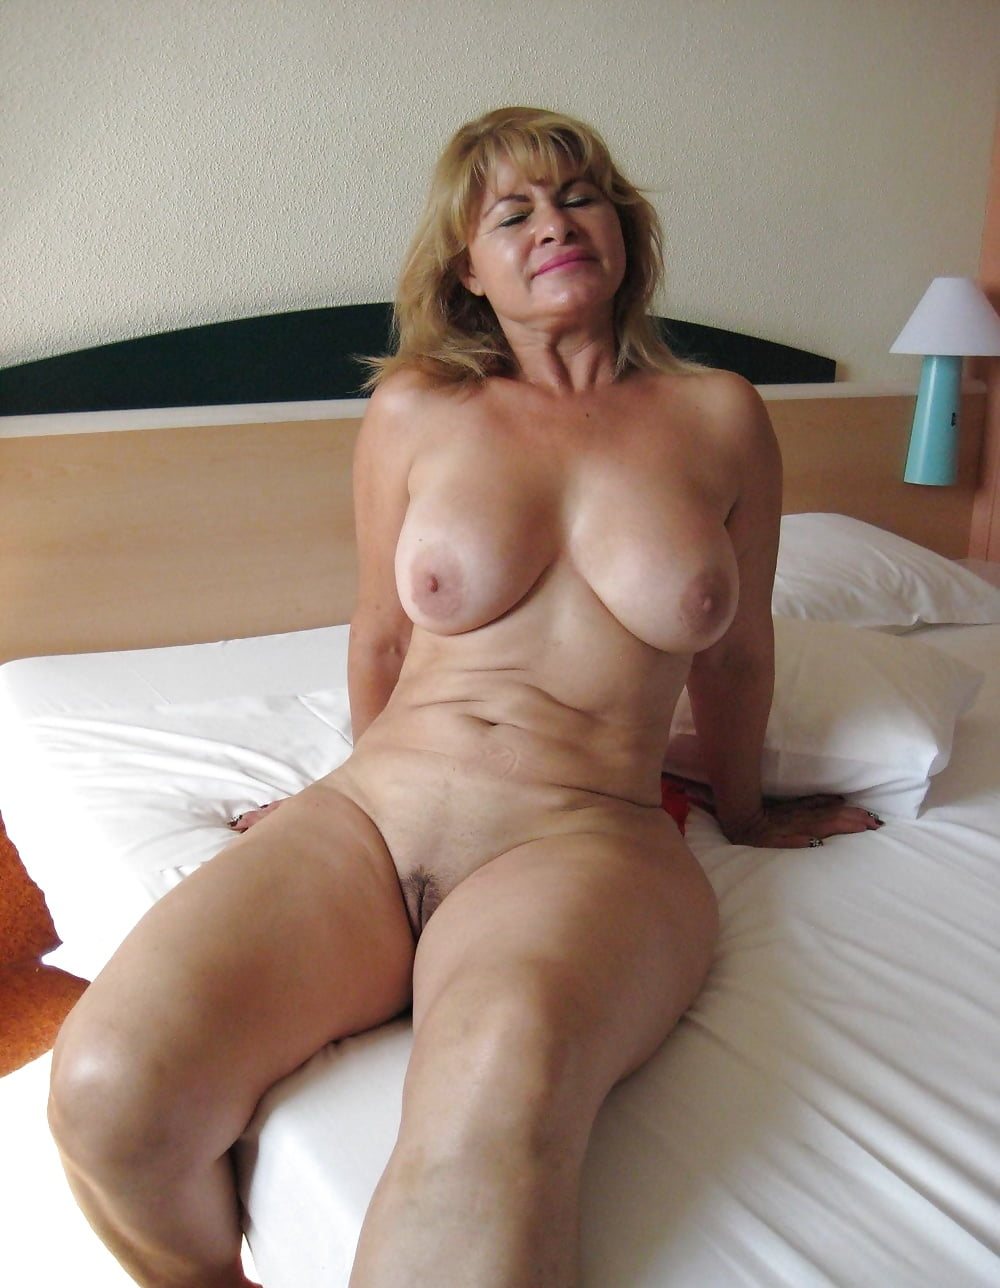 Mature sweden nude, planet mandy pussy forum